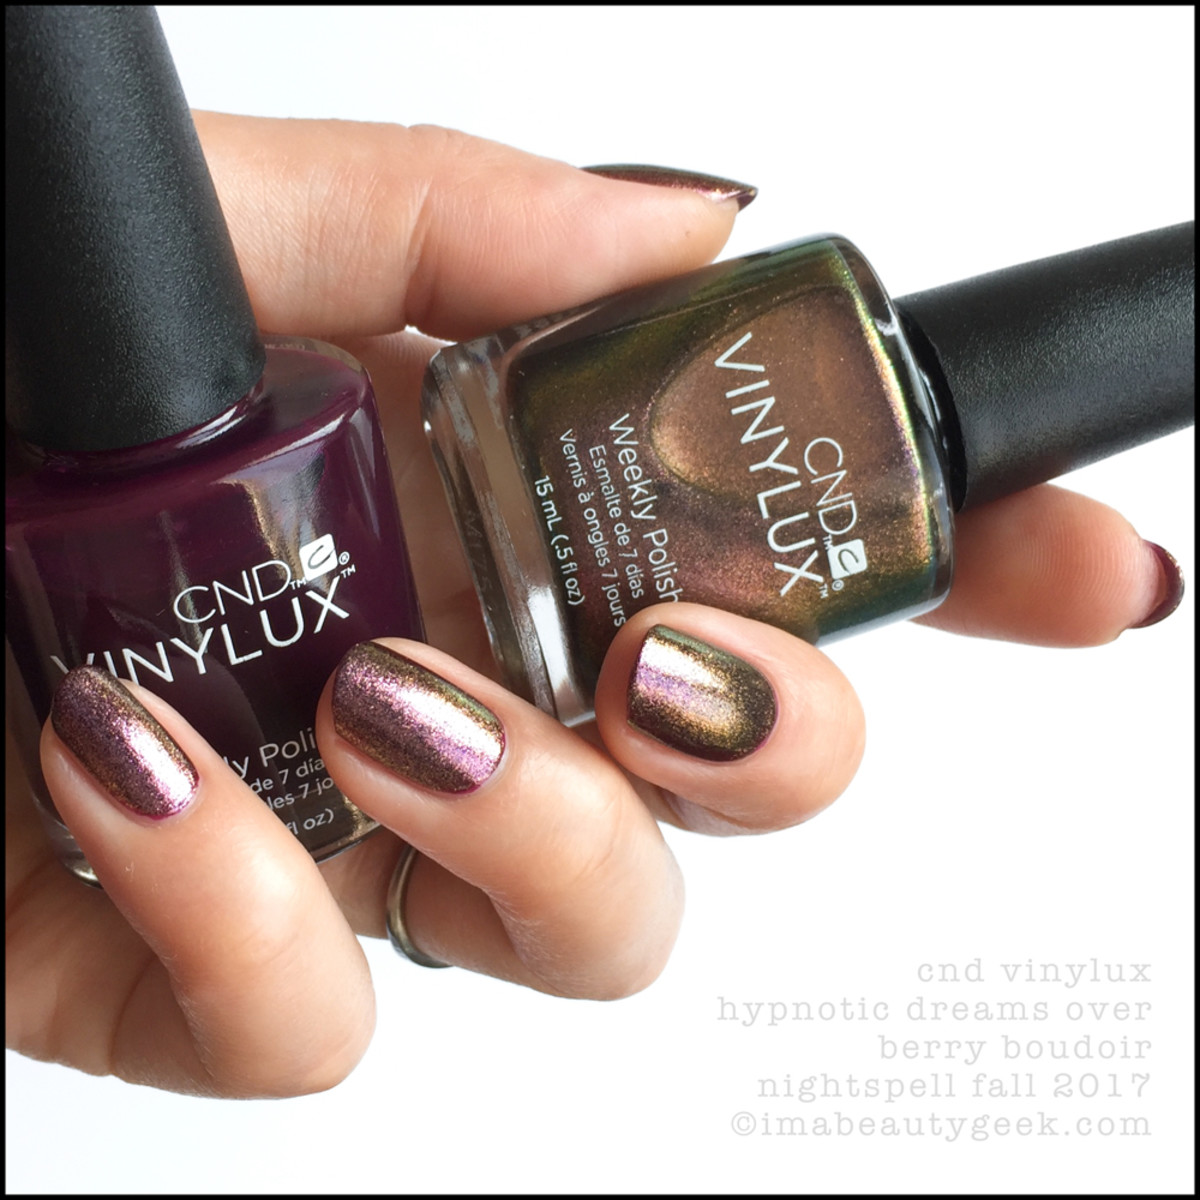 CND Vinylux Hypnotic Dreams over Berry Boudoir - CND Vinylux Nightspell Fall 2017 Collection Swatches